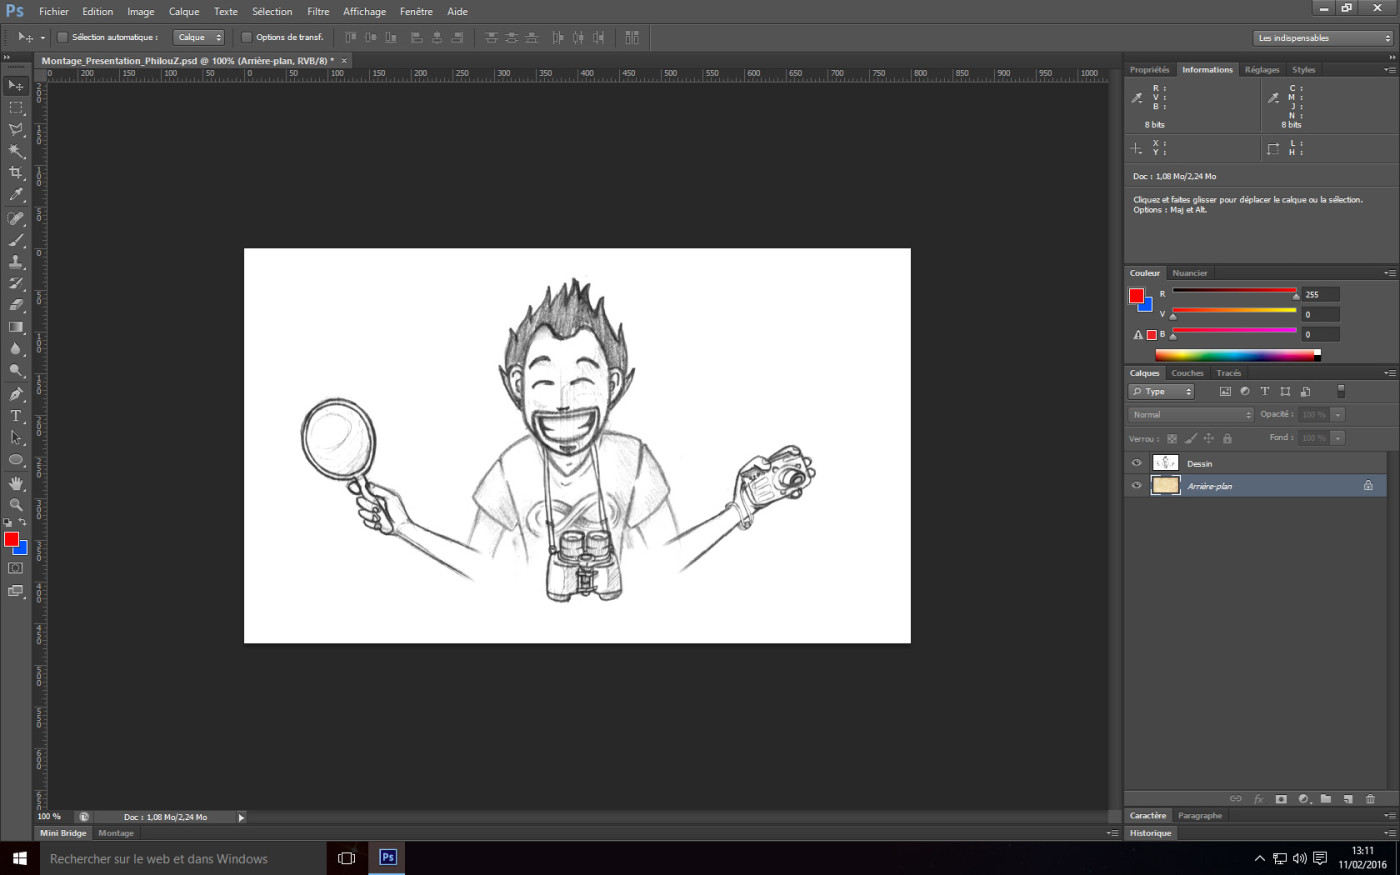 Tutoriel Photoshop - Affichage du dessin